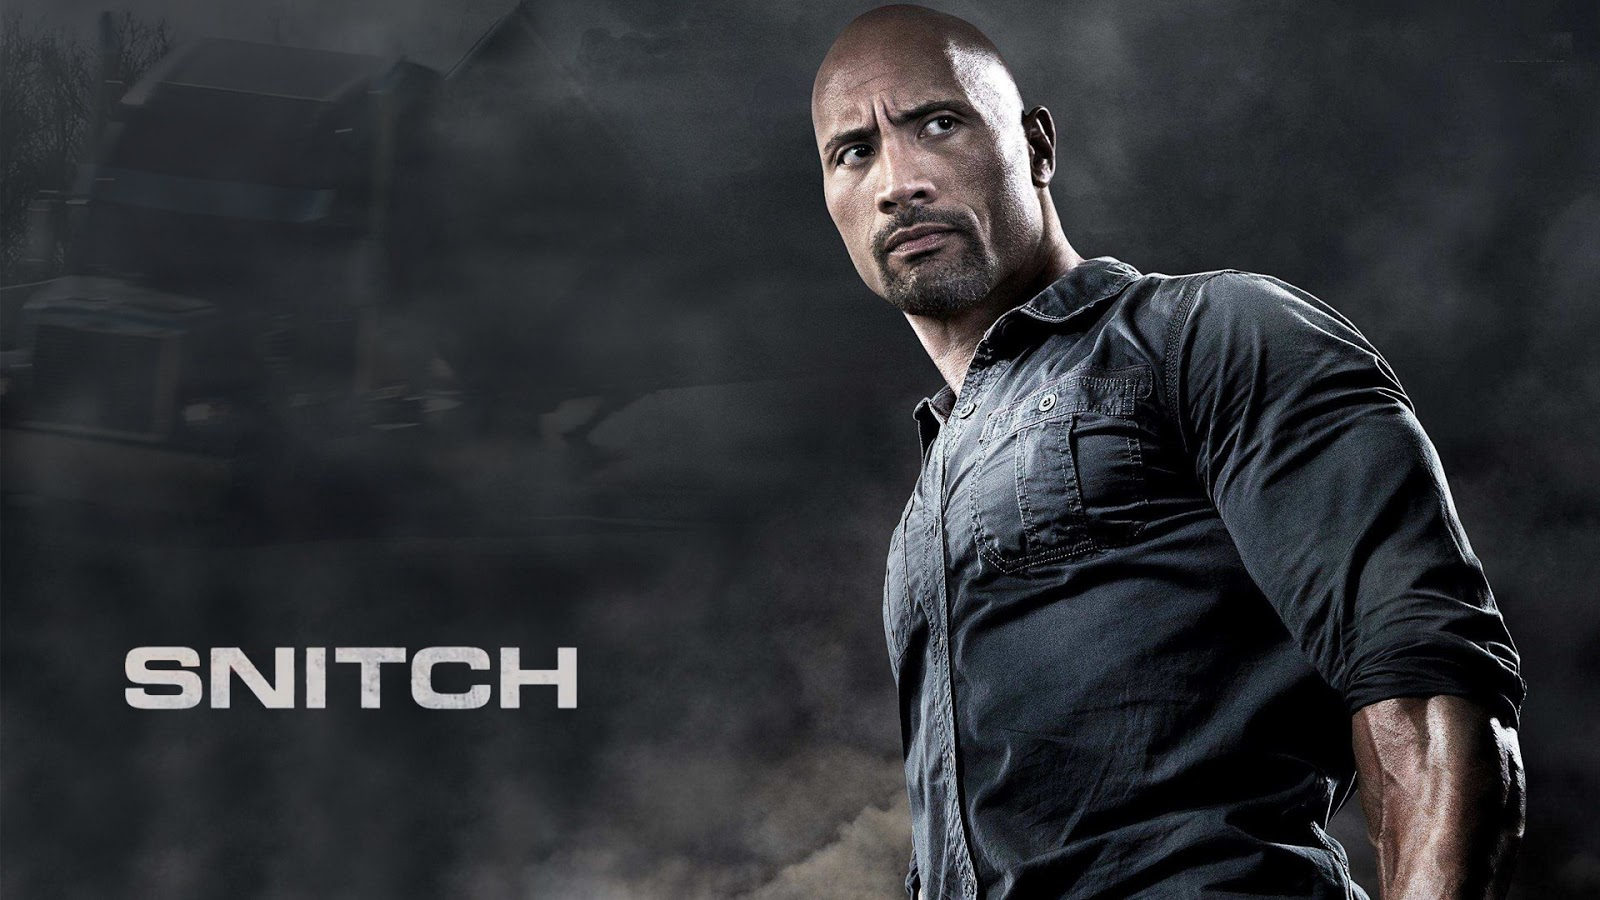 ALL ABOUT HOLLYWOOD STARS: Dwayne Johnson Hd Wallpapers 2013